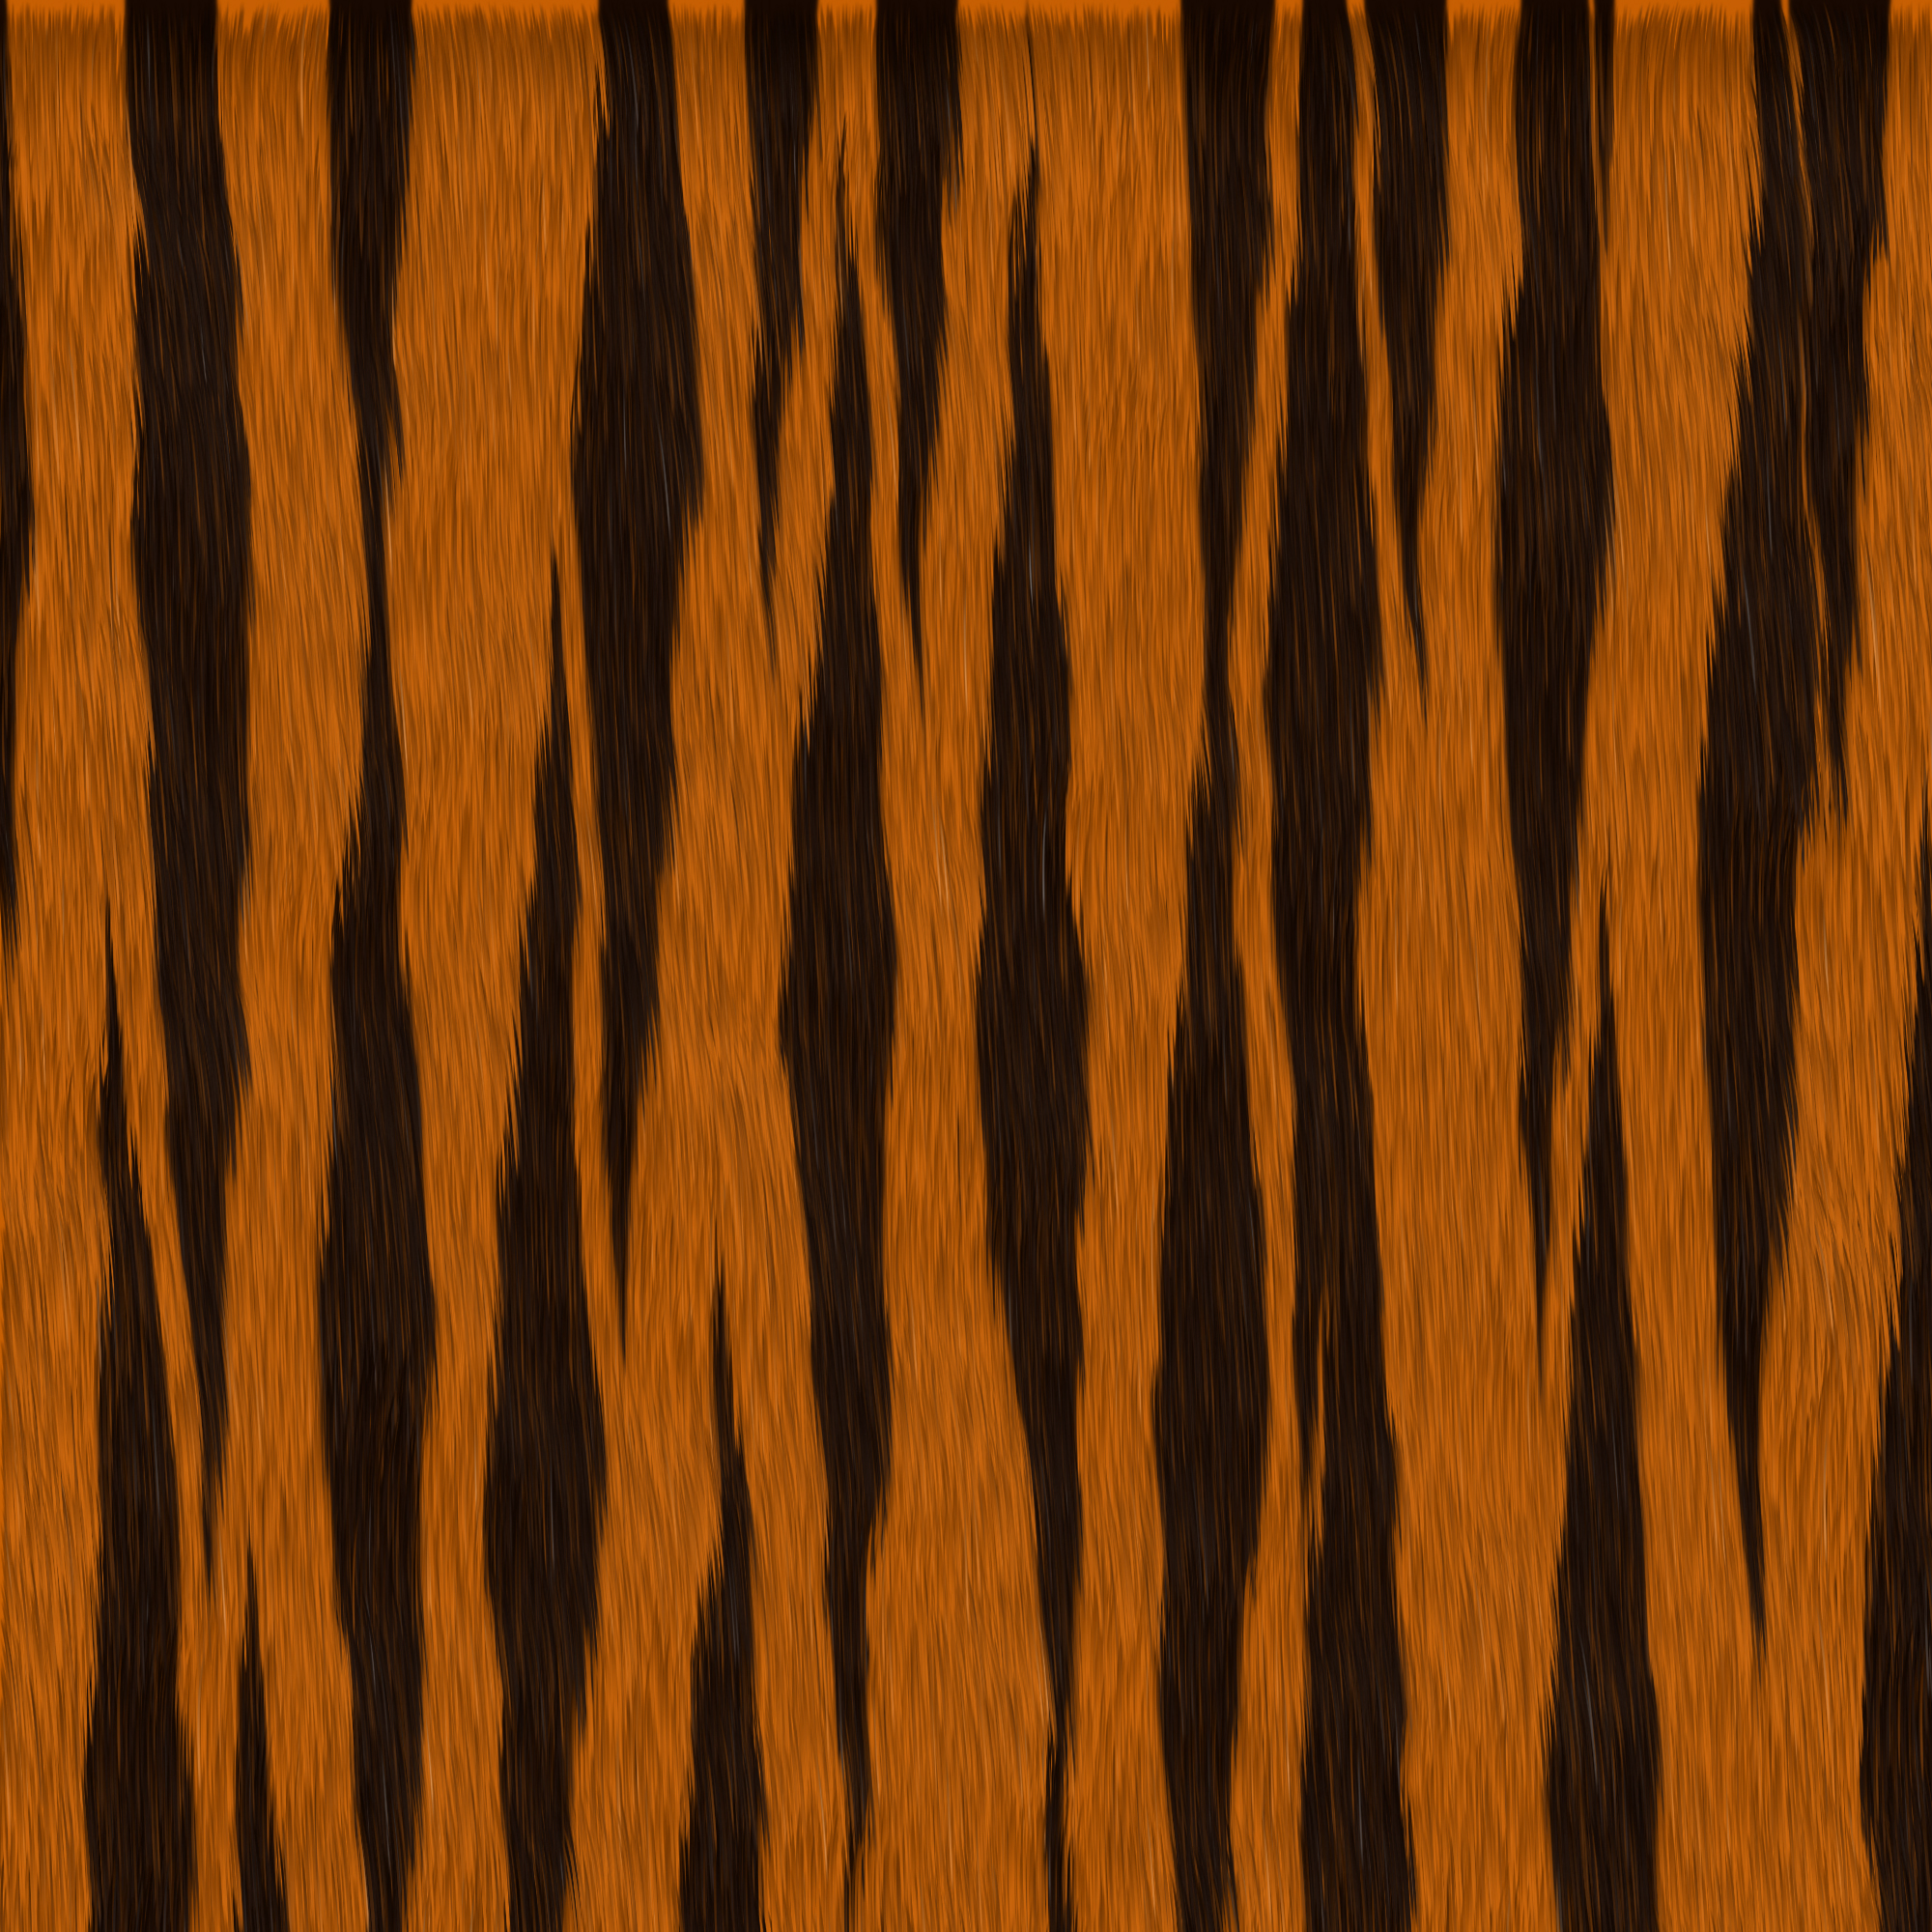 tiger, skin tiger , tiger animal texture, background, skin animal texture, background